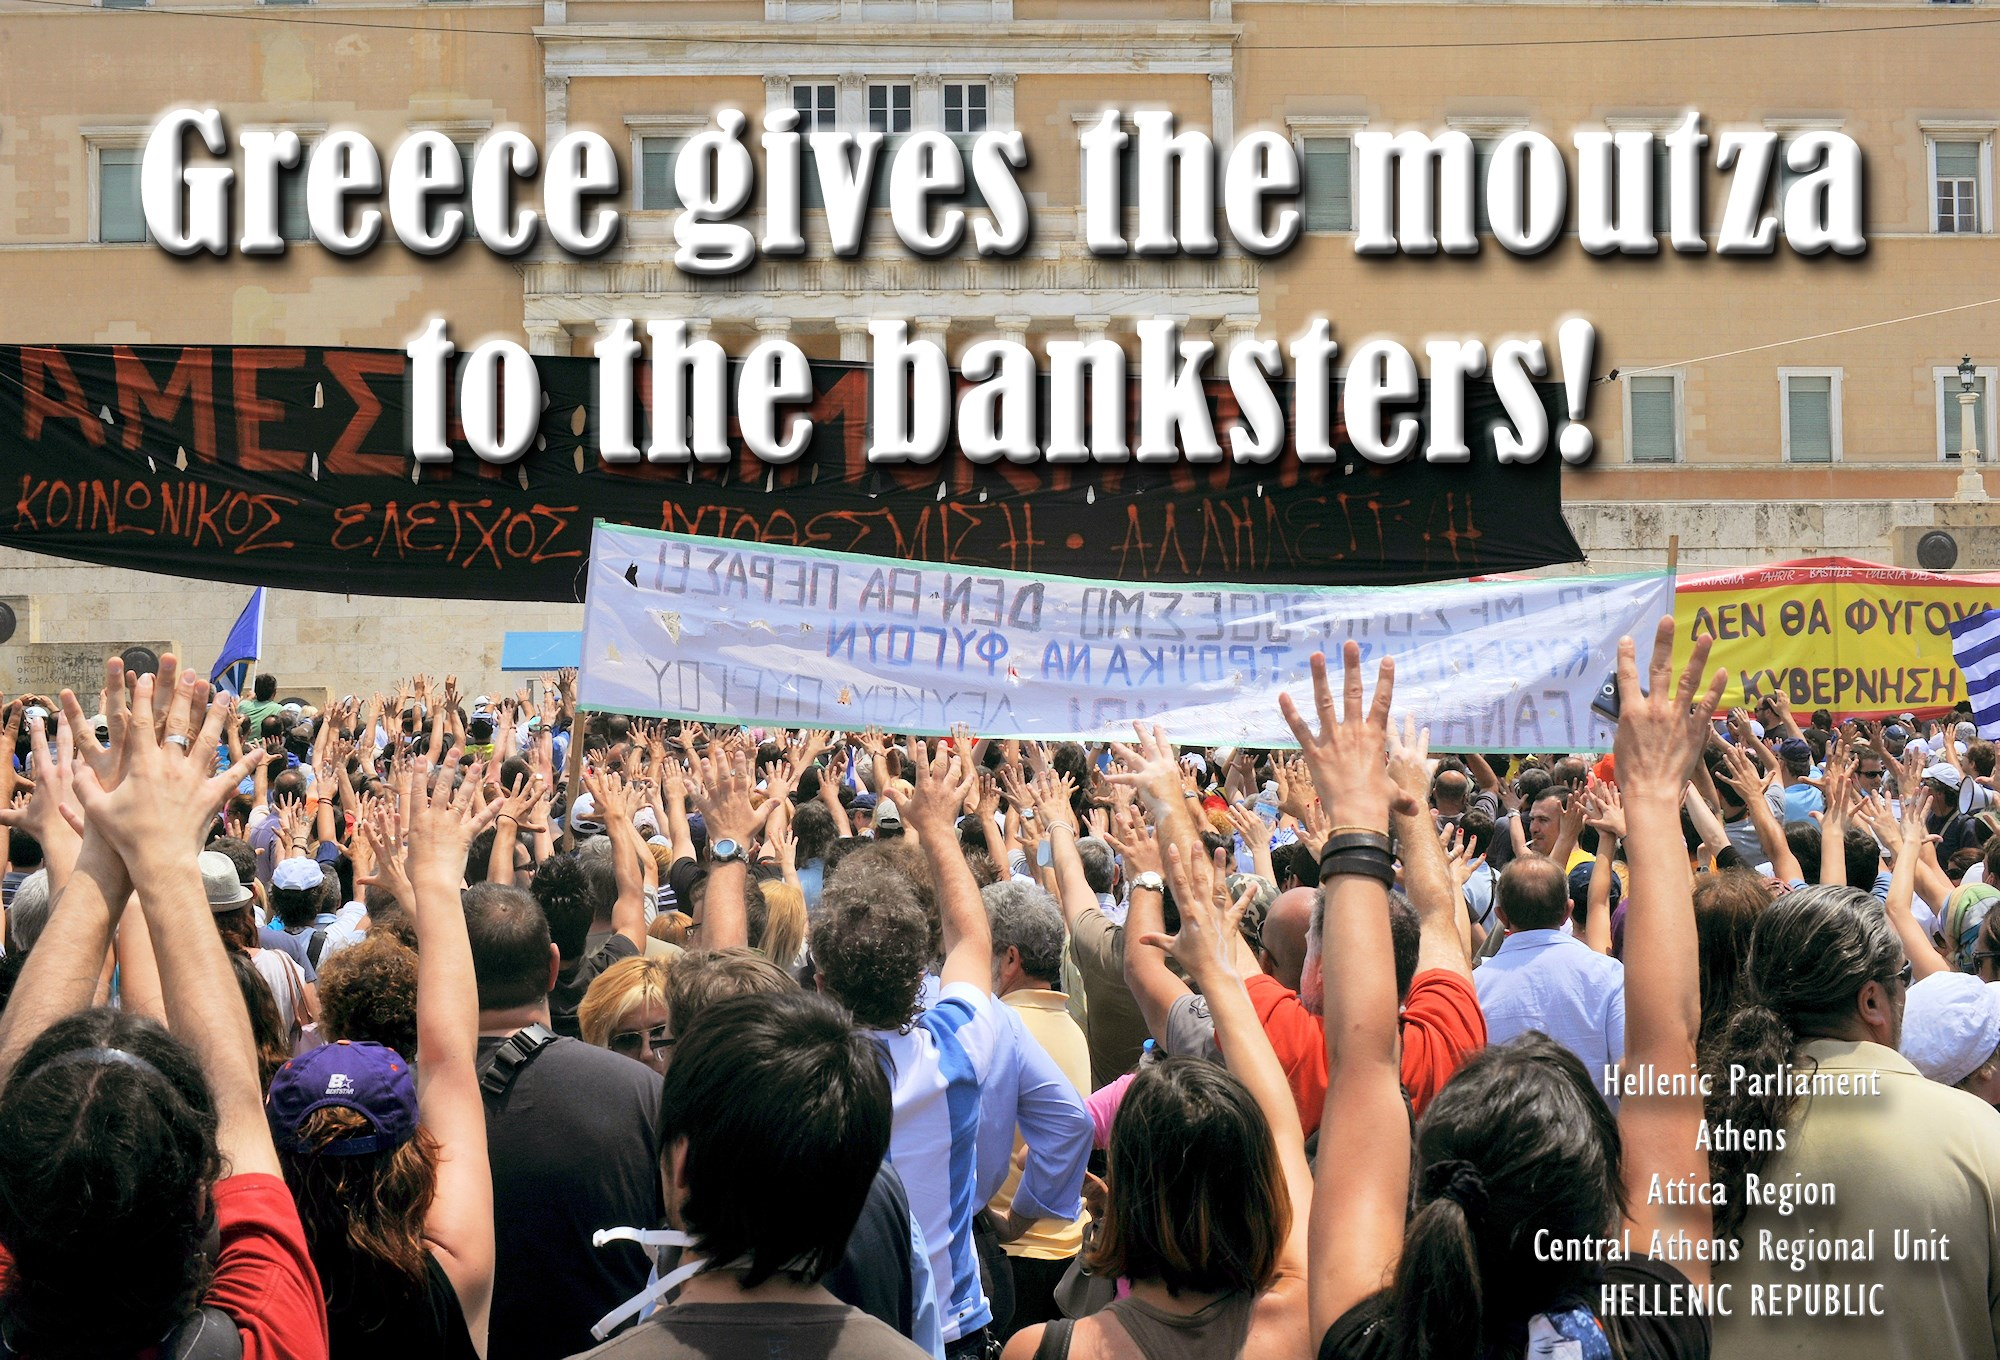 00 greece gives the moutza to the banksters 01. 060715